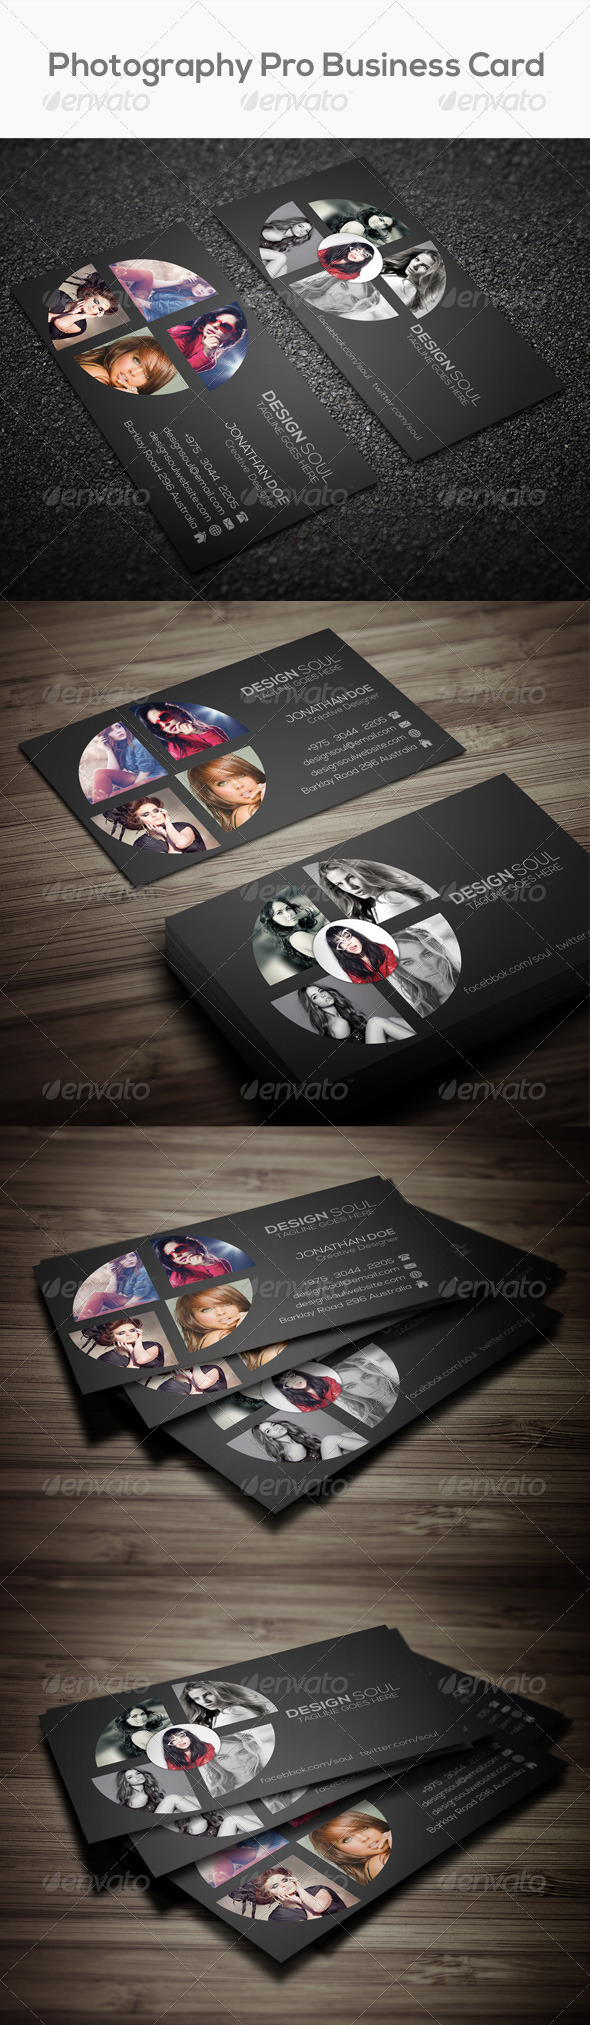 GraphicRiver Photography Pro Business Card 8136417